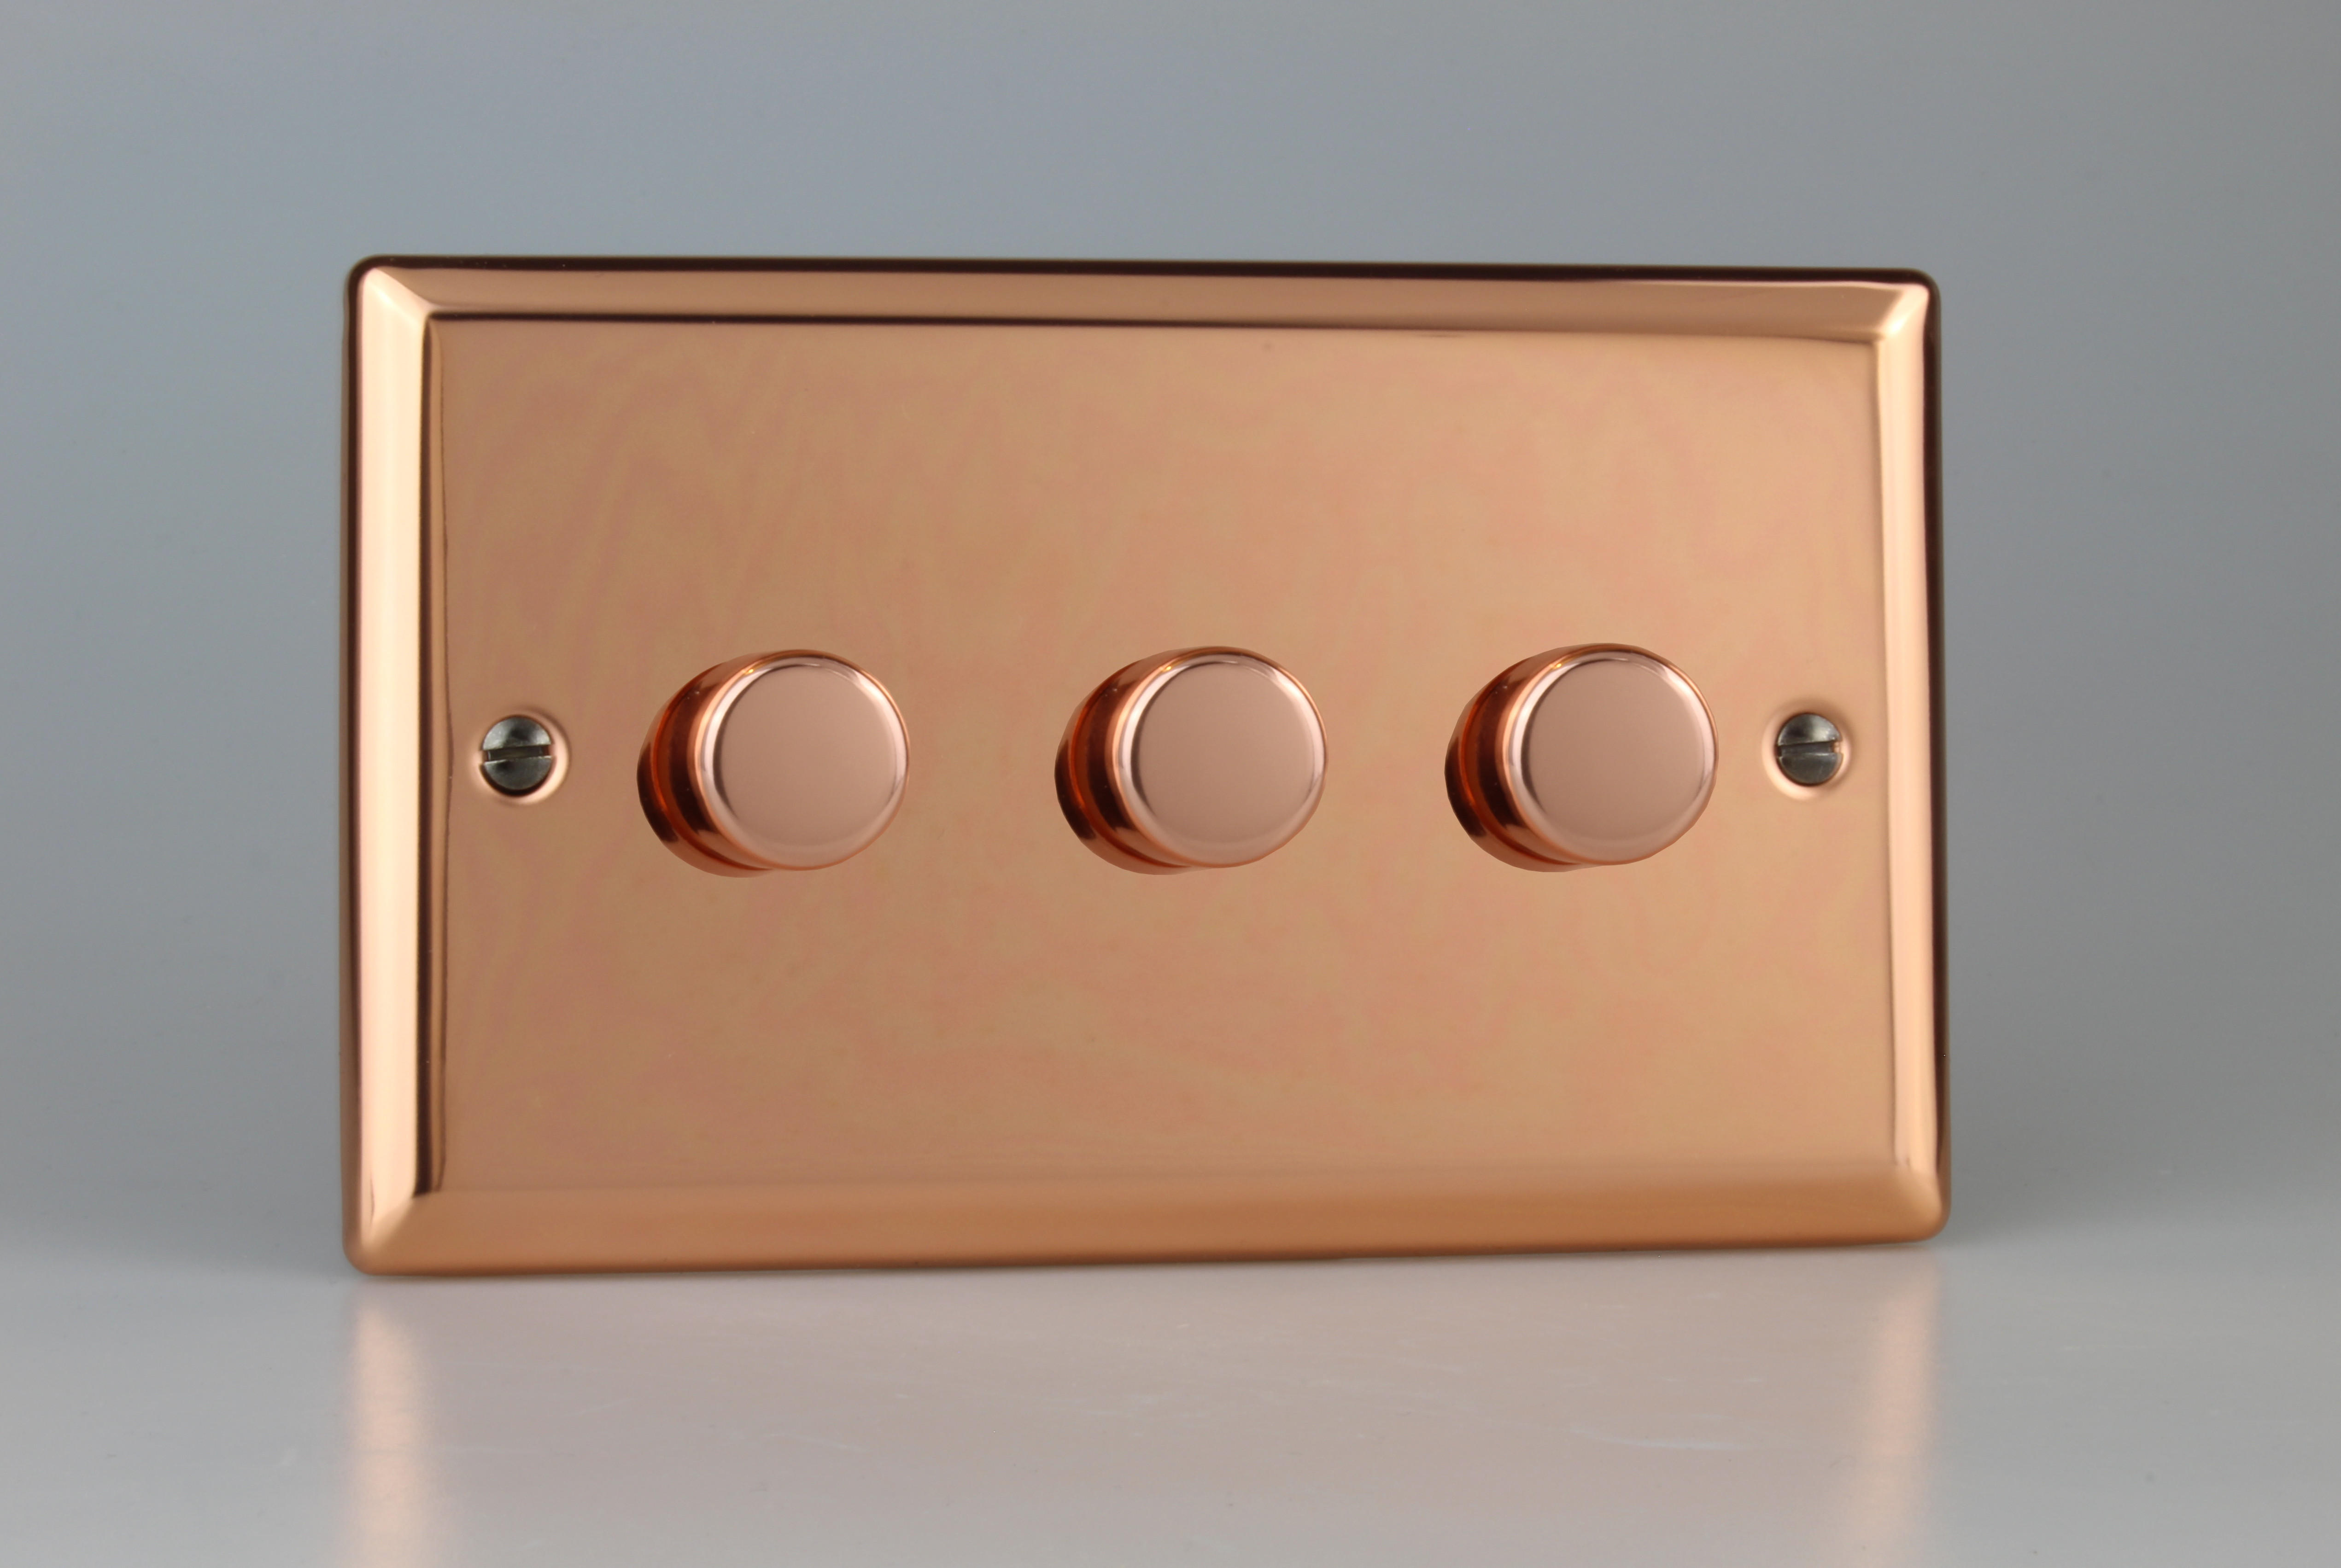 JYDP303.CU Varilight V-Pro Series 3-Gang 2-Way Push-On/Off Rotary LED Dimmer 3 x 0-120W (1-10 LEDs) (Twin Plate), Classic Polished Copper